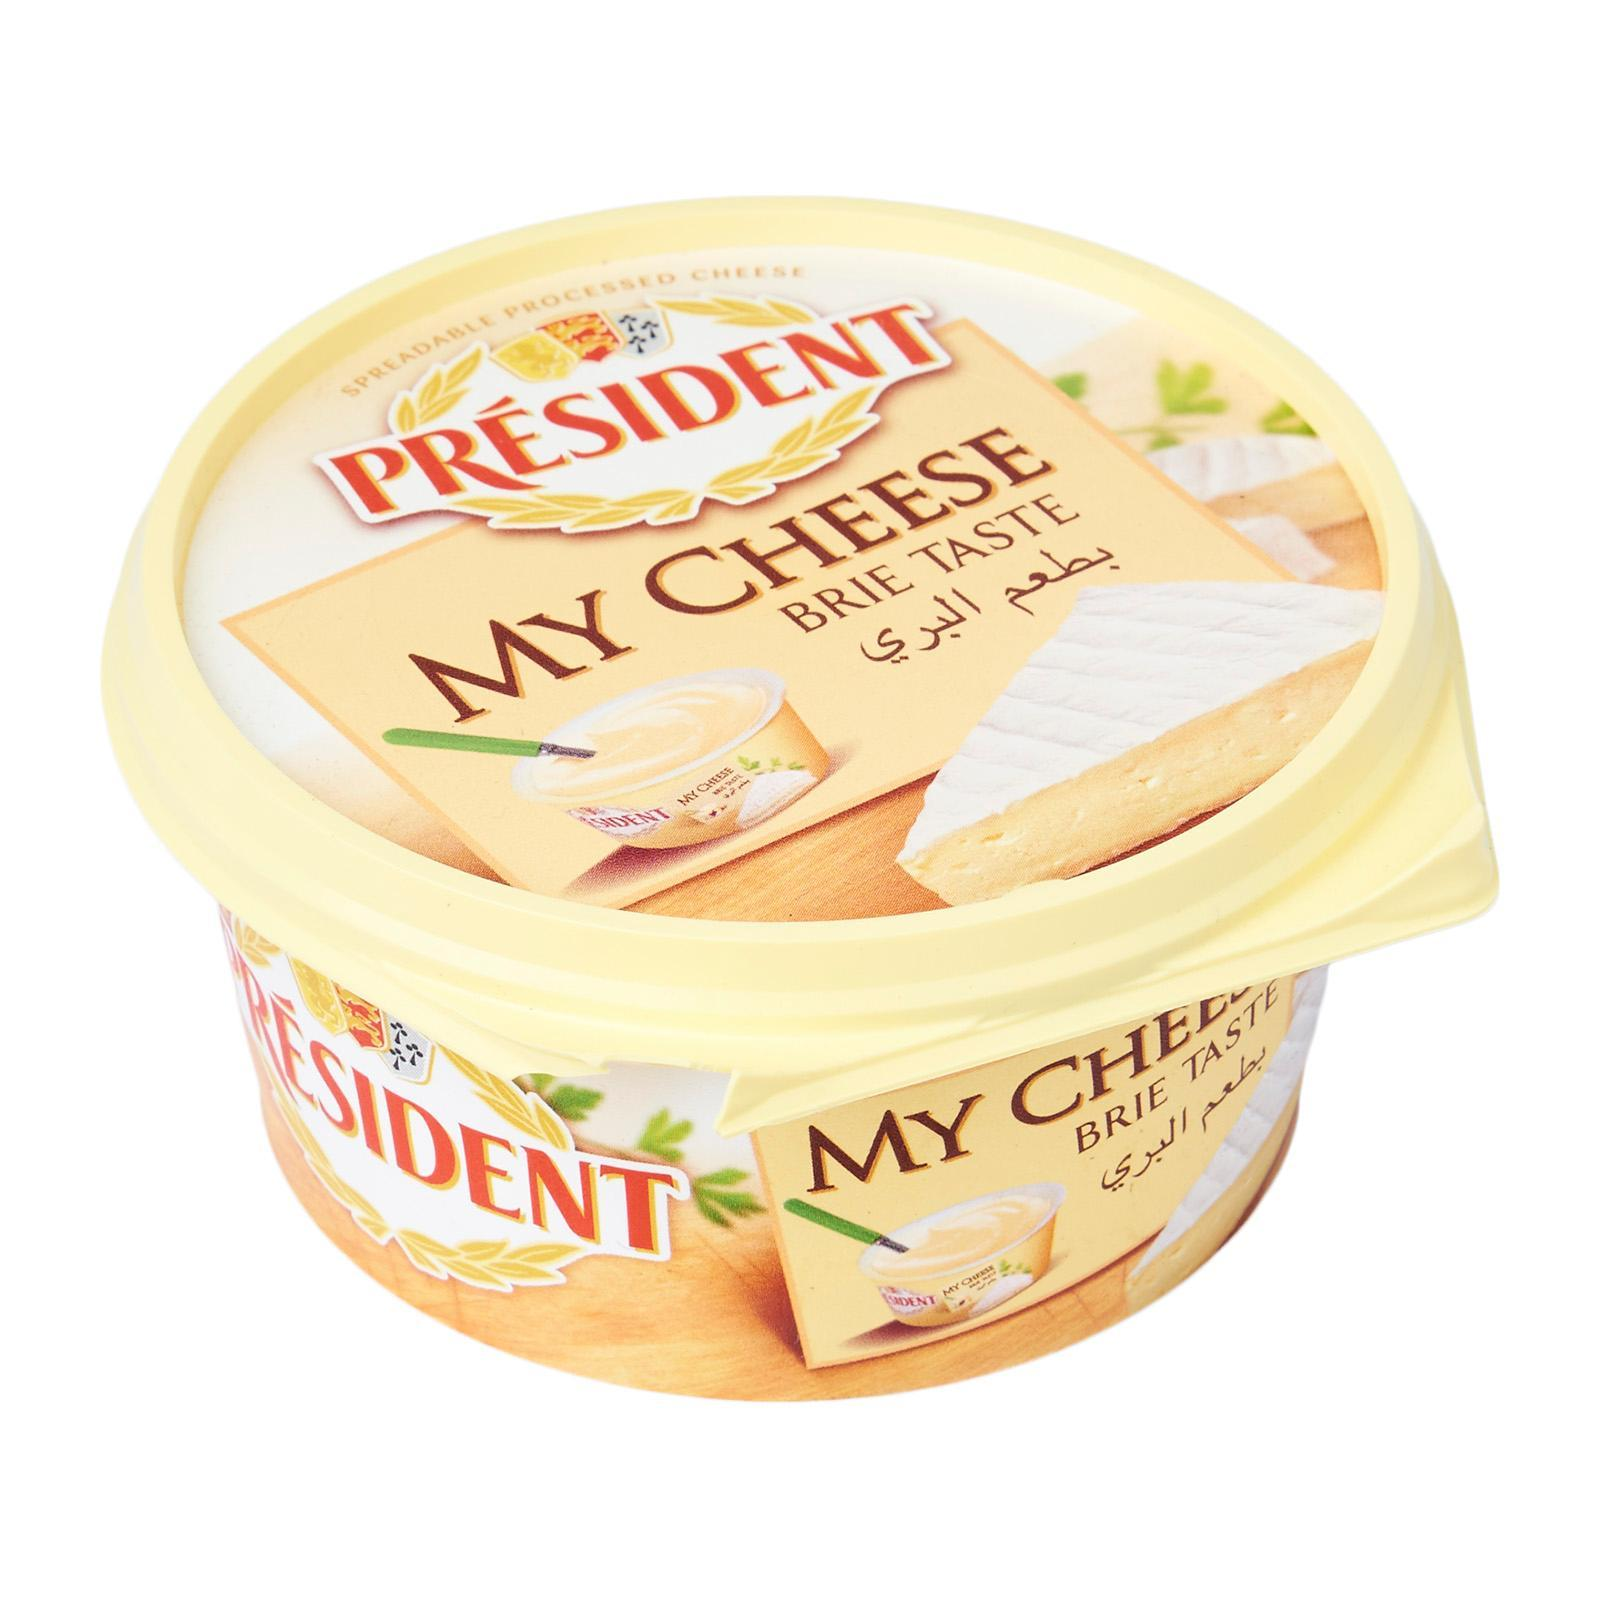 PRESIDENT My Cheese Brie 125g